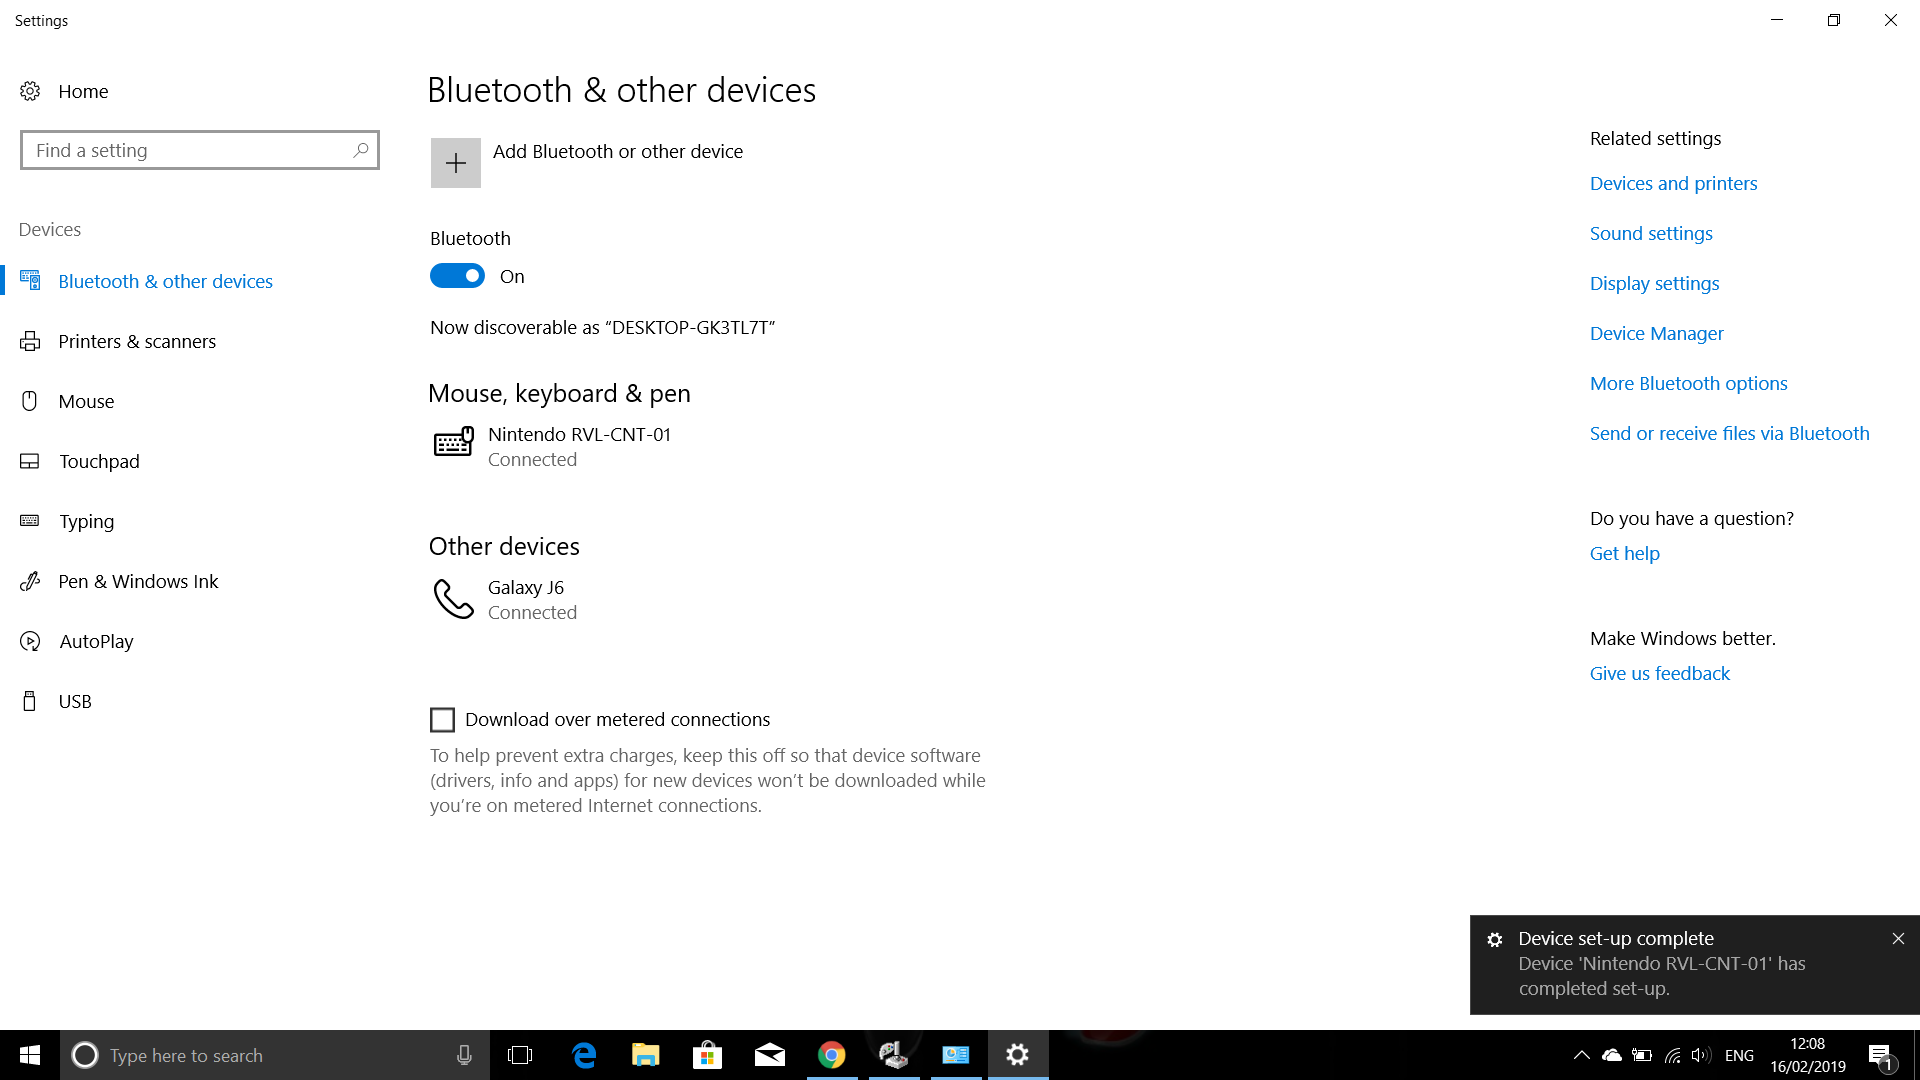 Trying to connect a Wii Remote to Windows 10 through Bluetooth - and